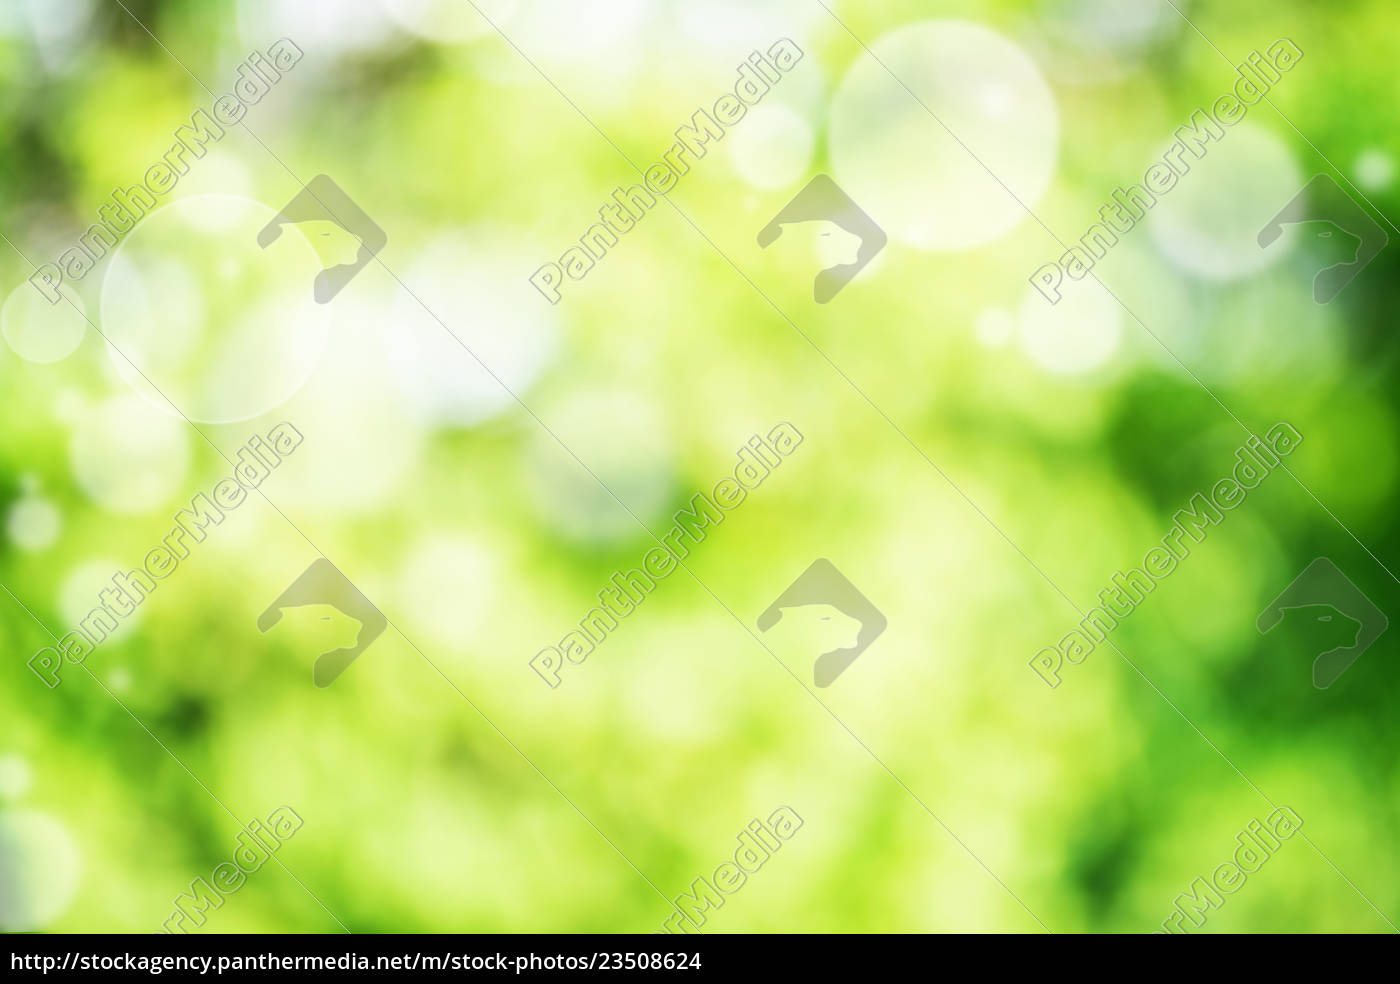 abstract, green, bright, bokeh, background - 23508624